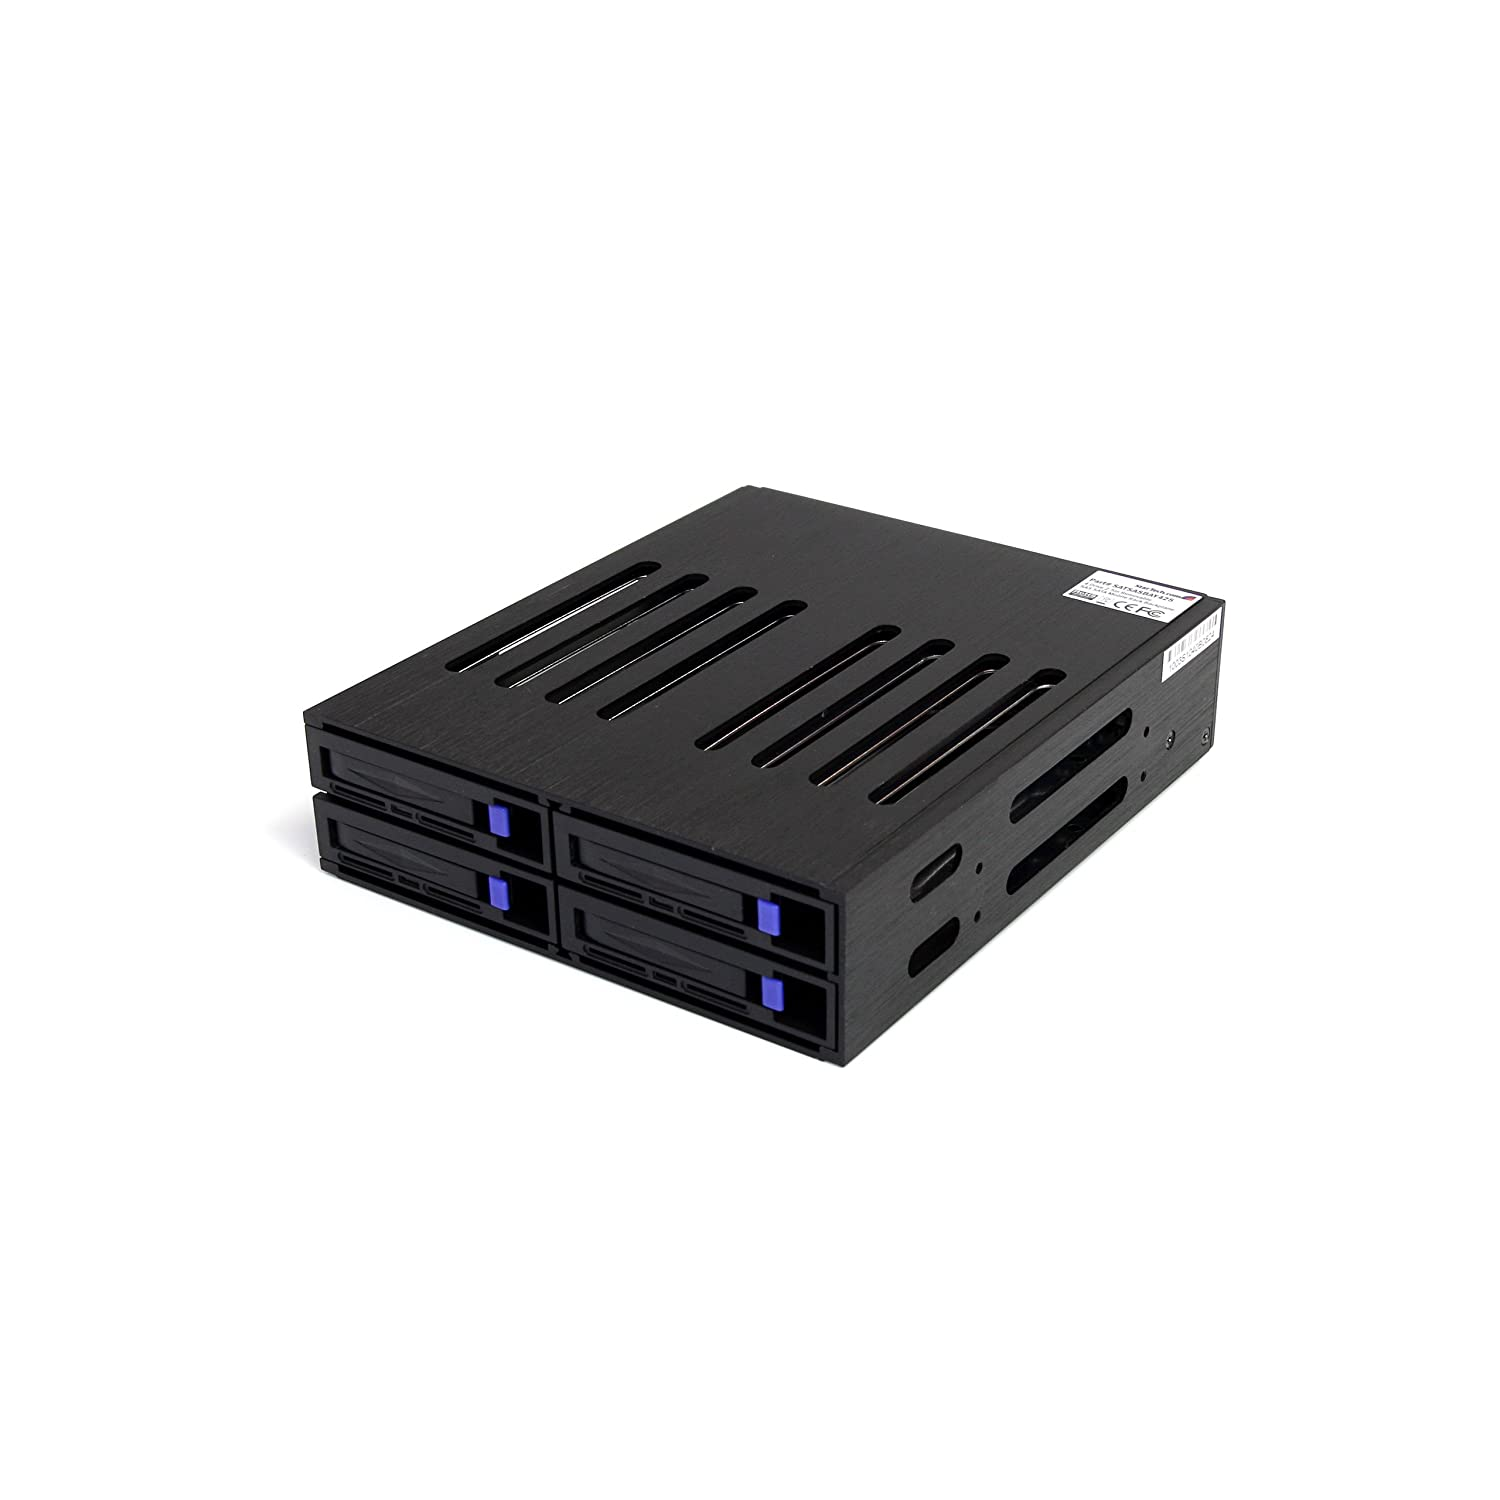 "StarTech 2.5"" SAS and SATA drive enclosure on Amazon.com"